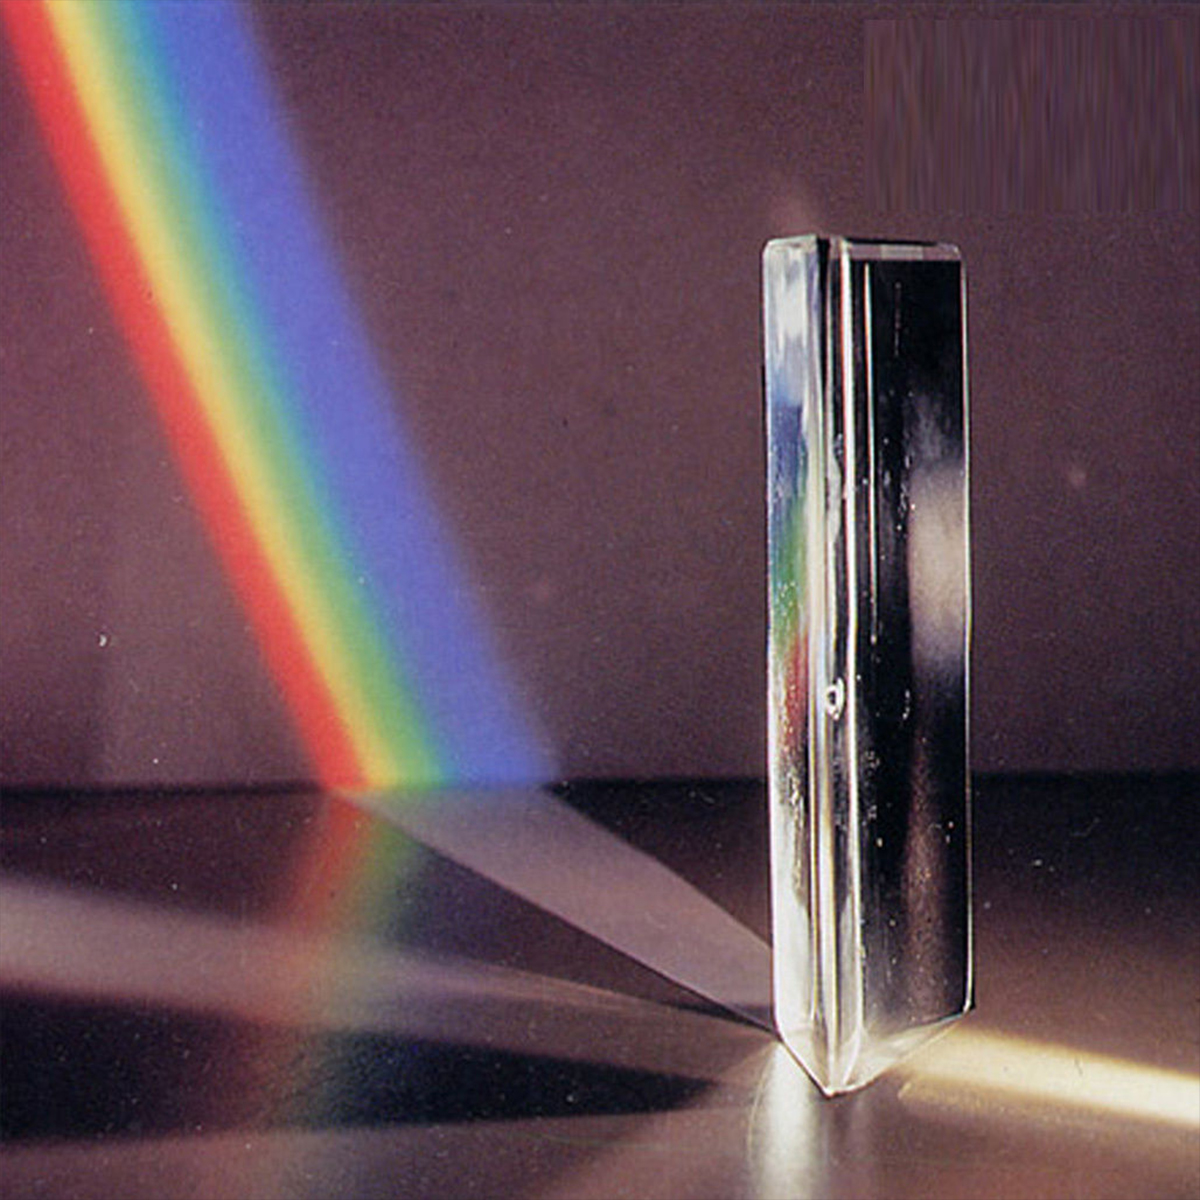 8cm Optical Glass Triangular Triple Prism Physics Teaching Light Spectrum With Stand